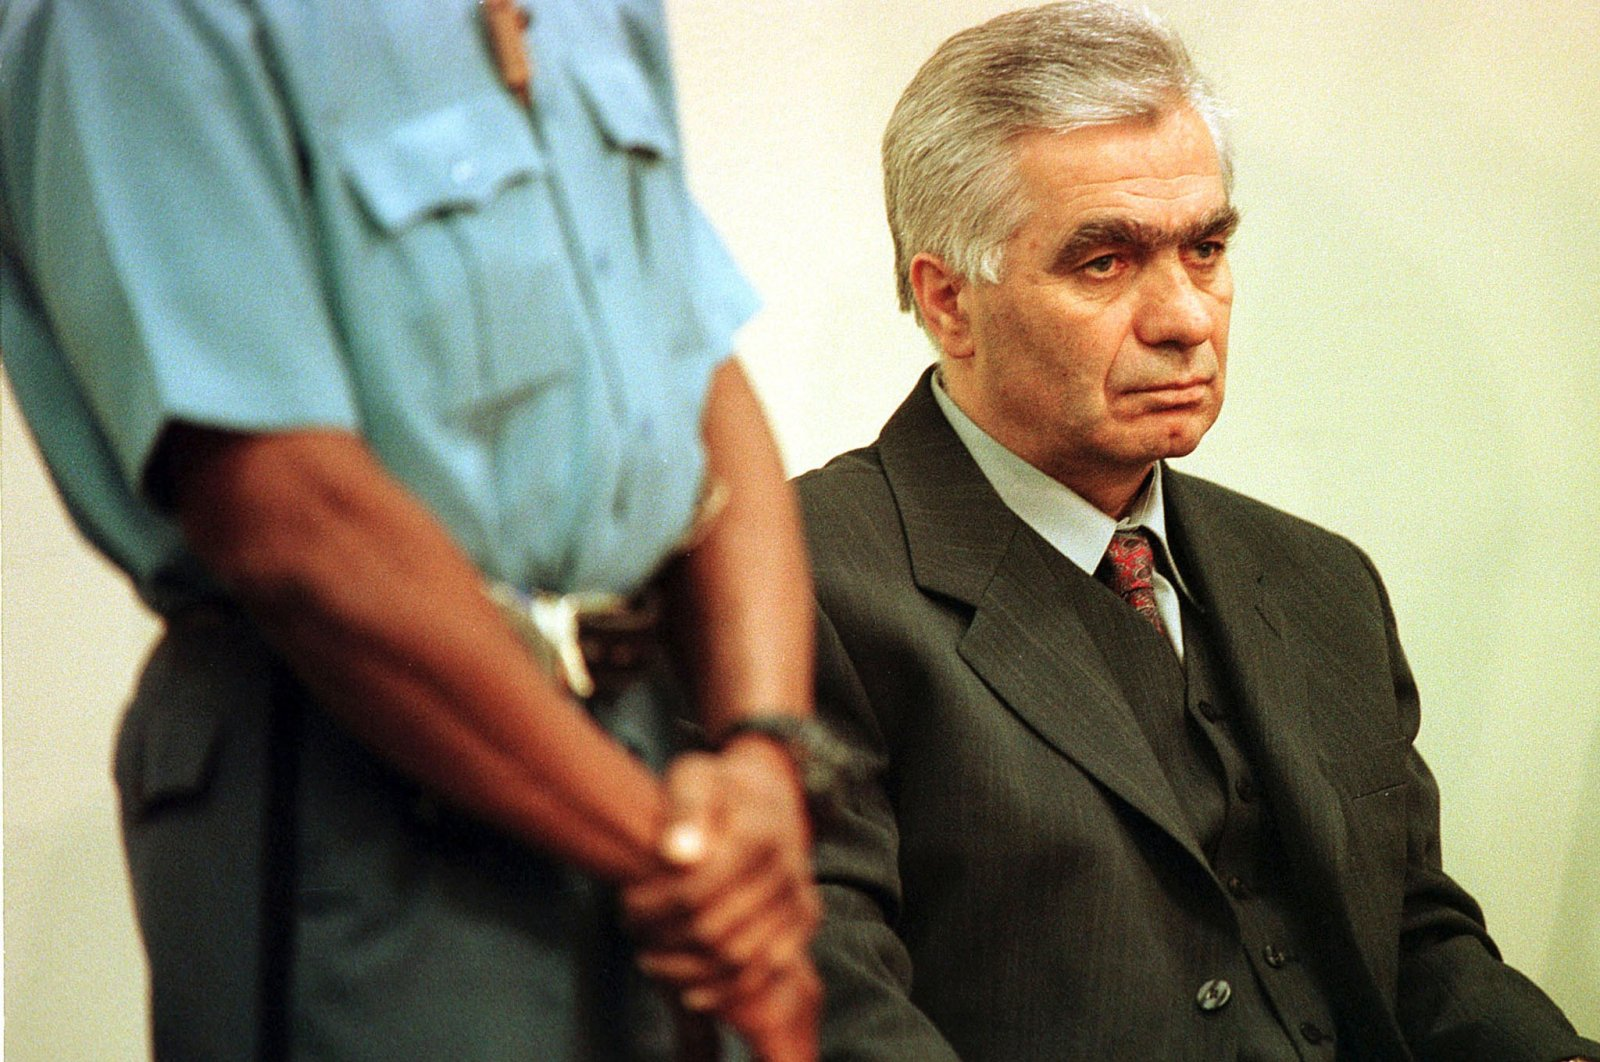 Momcilo Krajisnik, a former top wartime Bosnian Serb official who was convicted of war crimes by a U.N. court, has died after contracting the new coronavirus. (Reuters Photo)